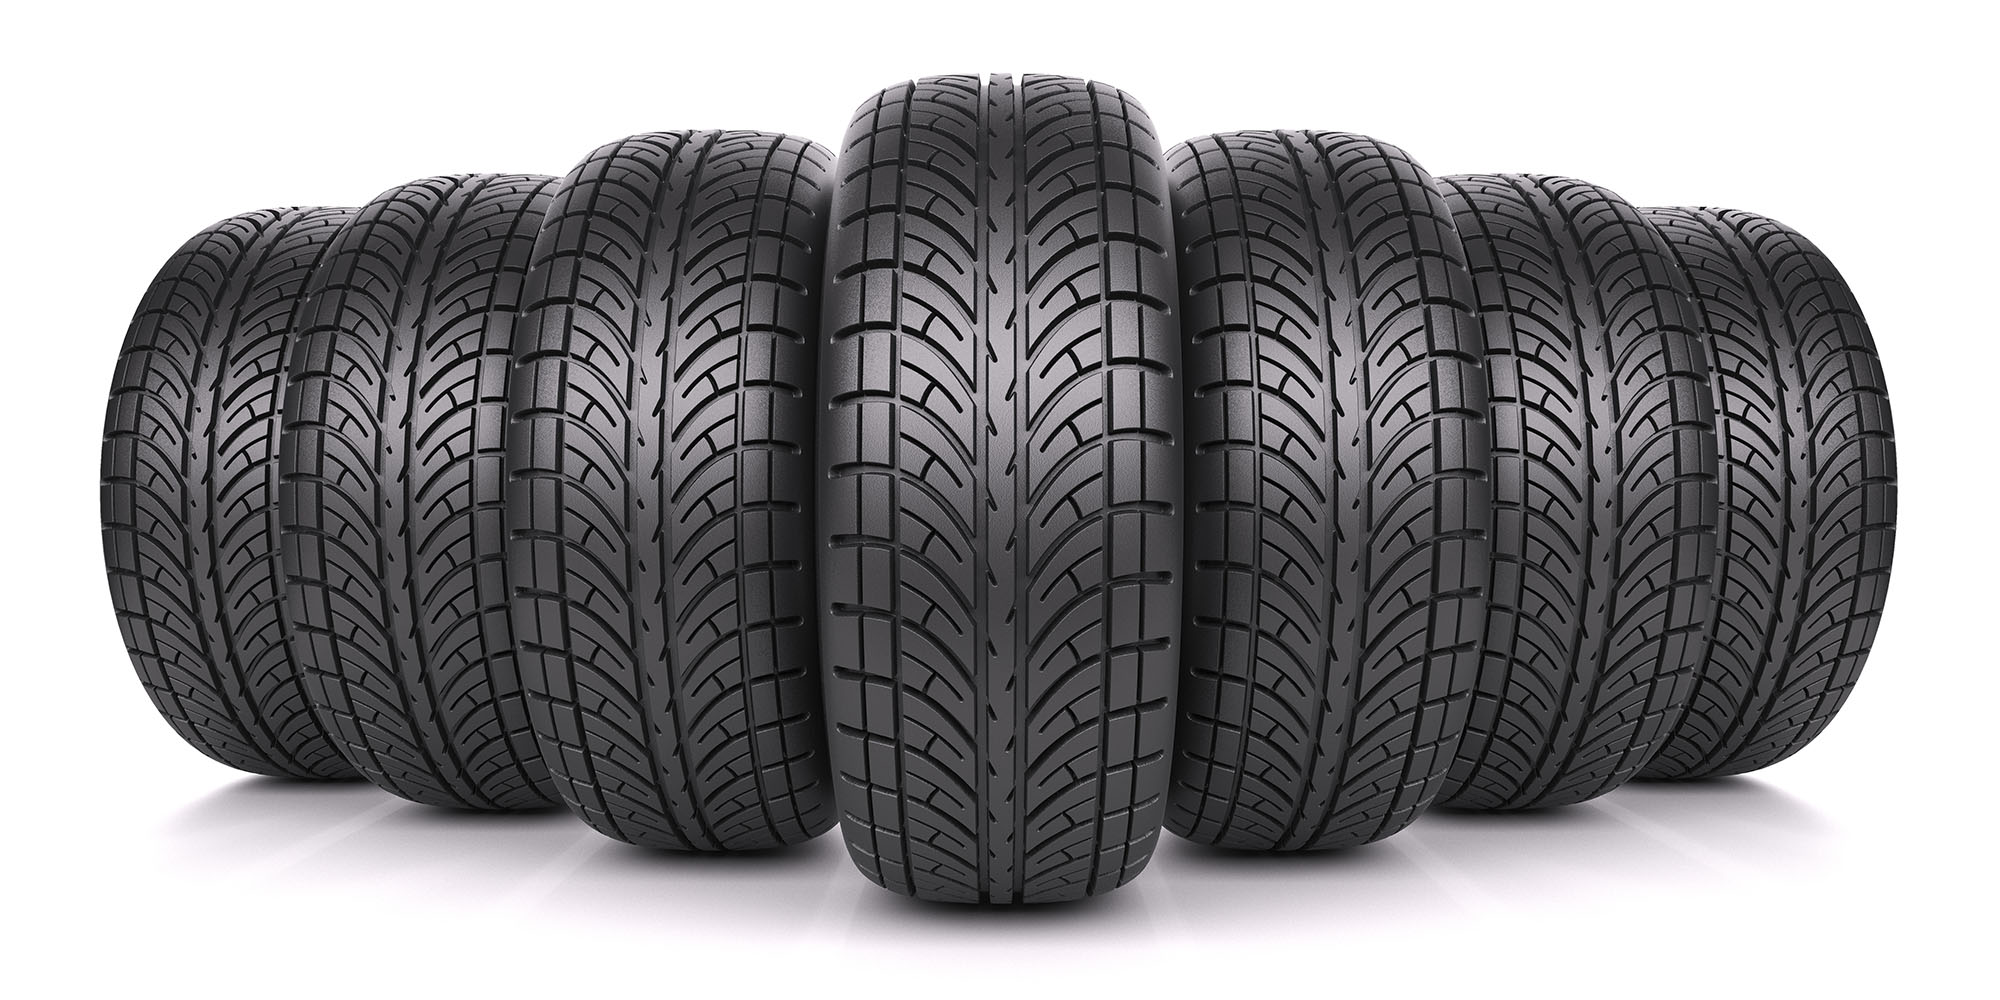 Tyres in row